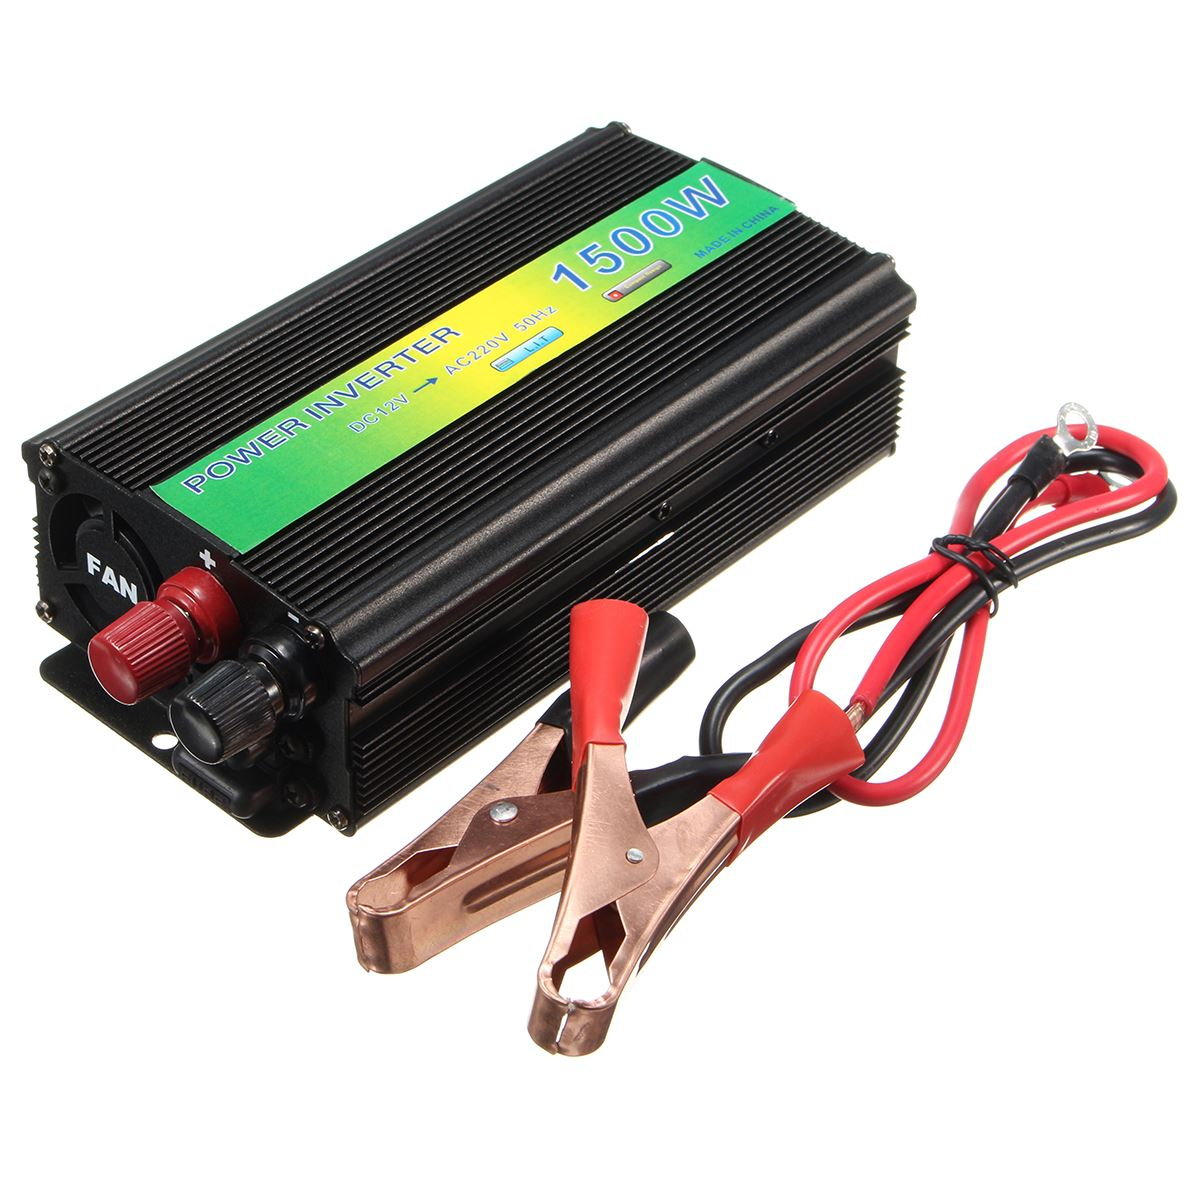 цена на 1500W Power Inverter DC 12V To AC 220V Modified Pure Sine Wave Converter USB Charger